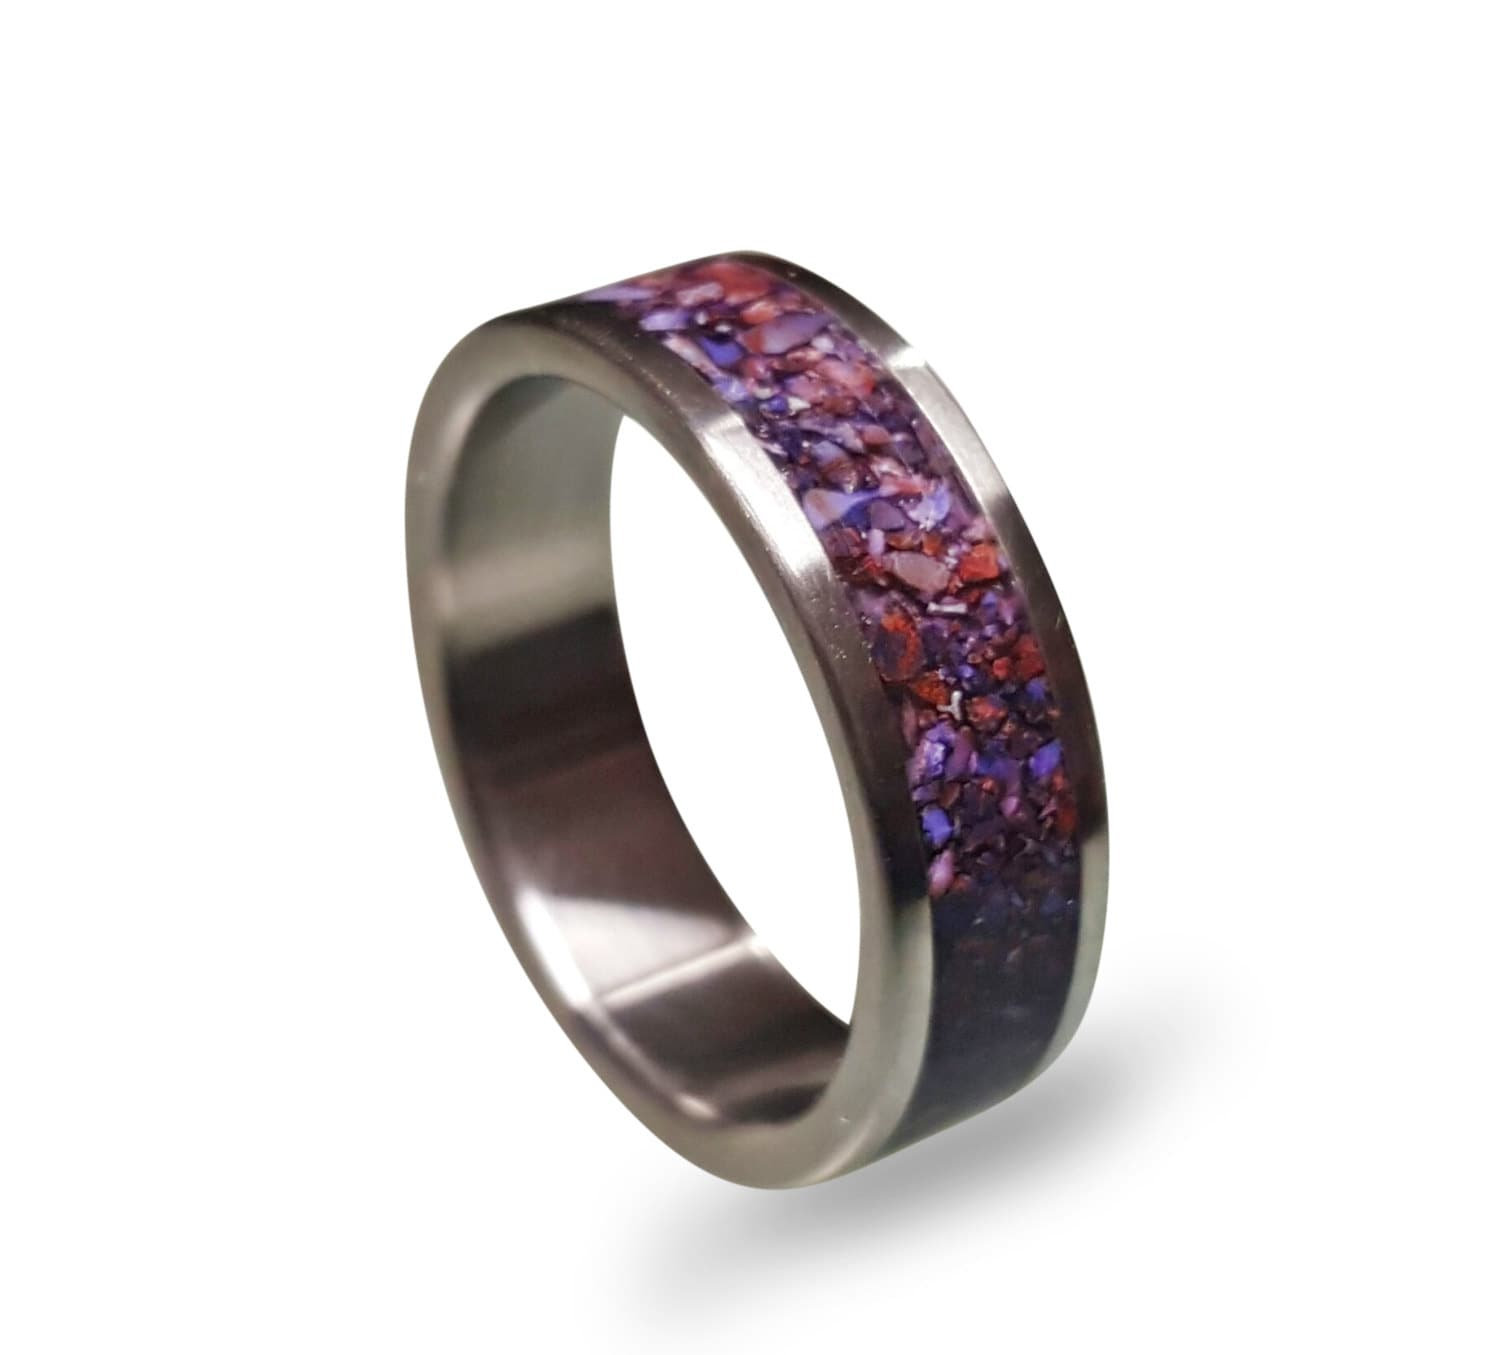 men's titanium ring with purple crushed amethyst inlay